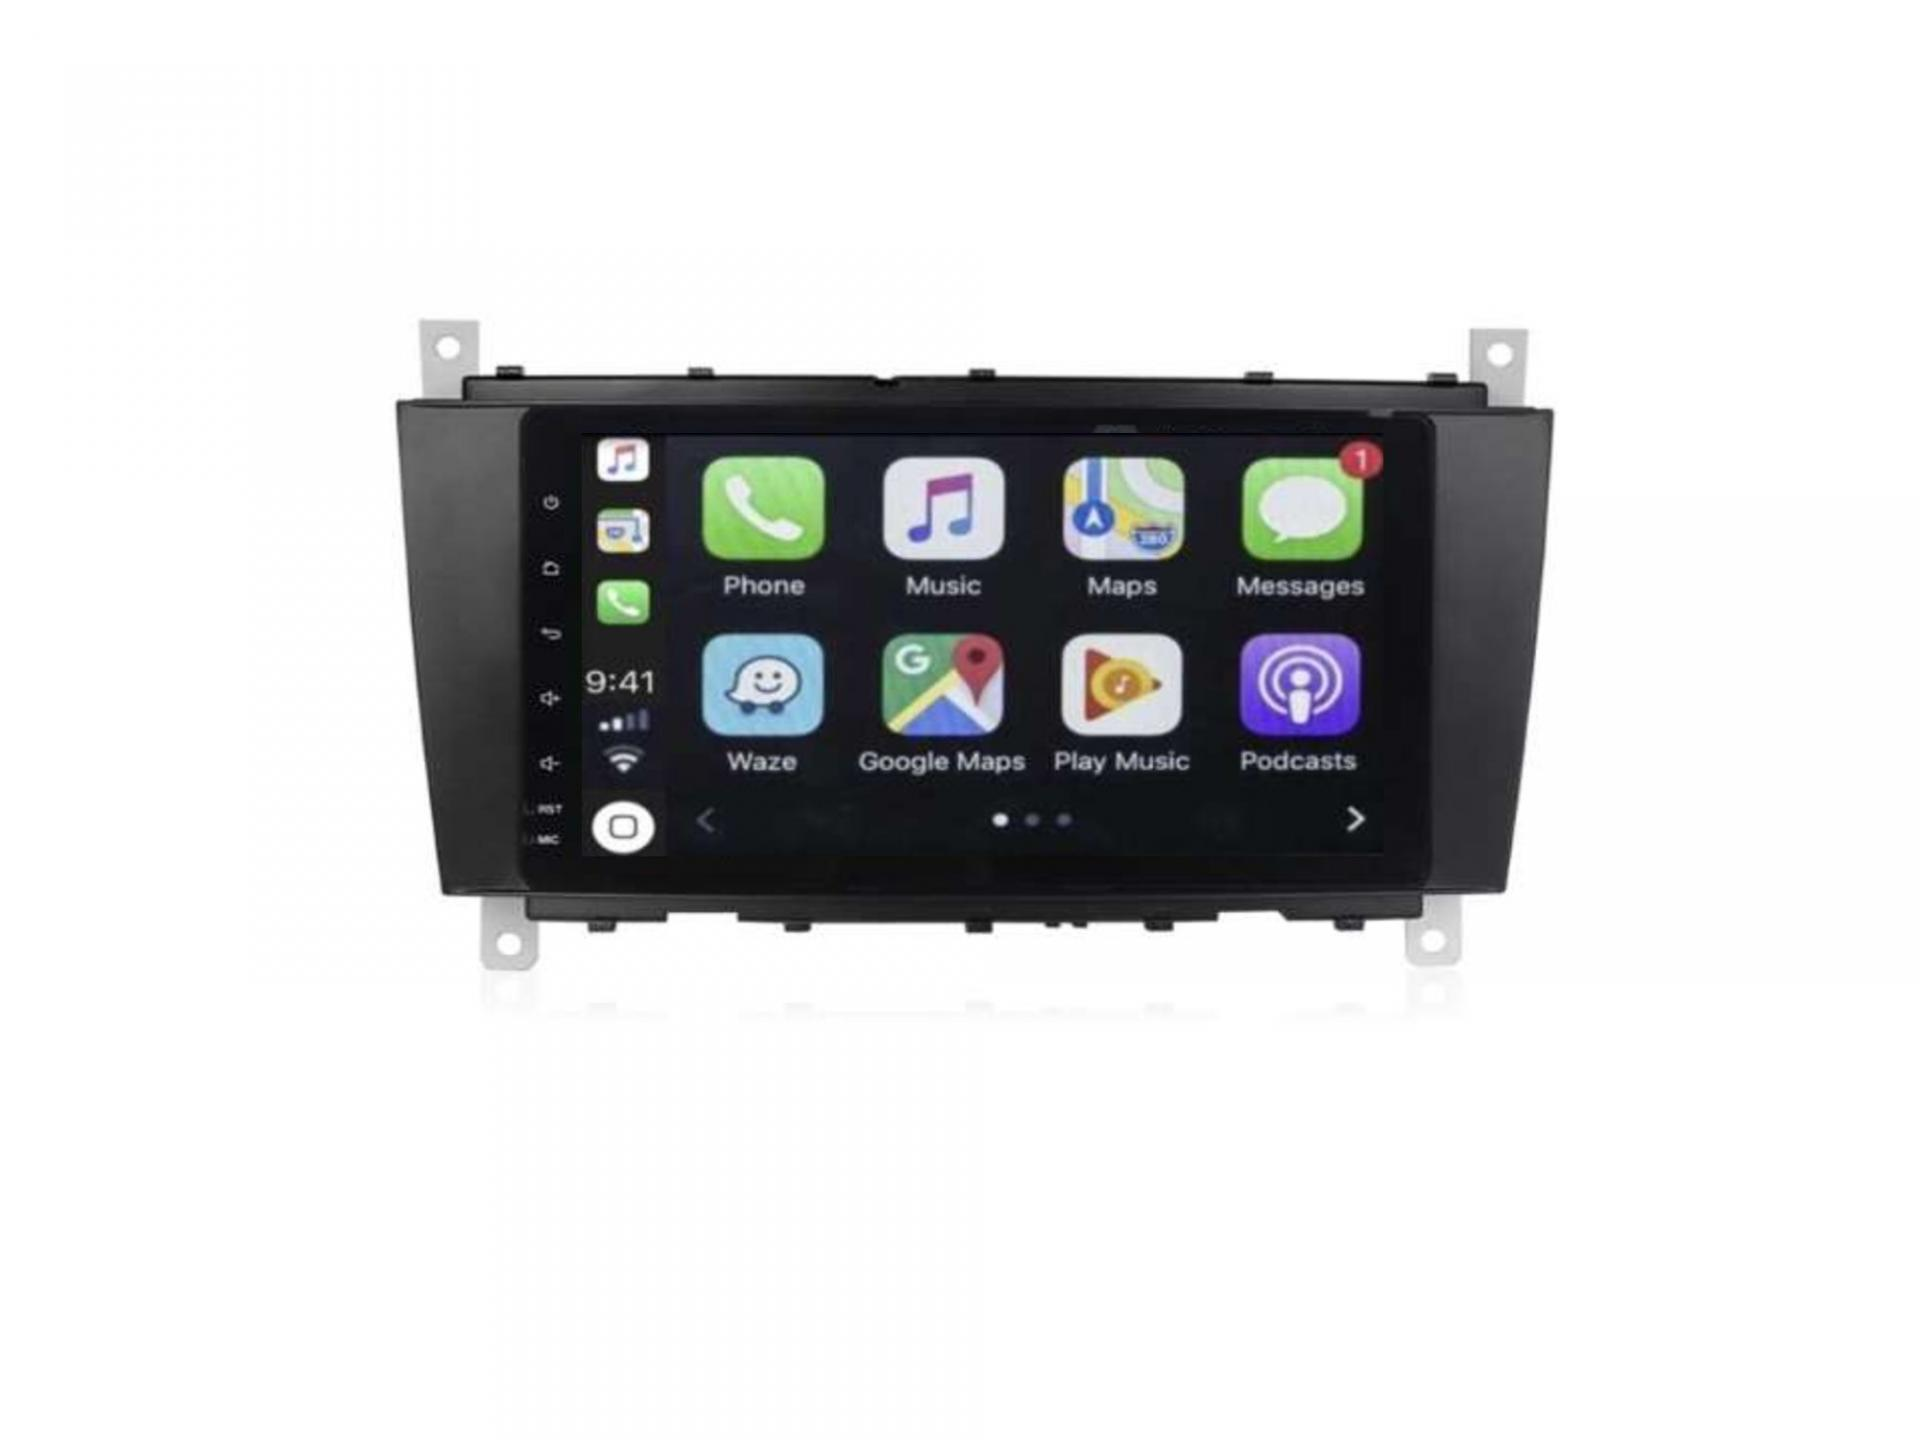 Autoradio gps bluetooth carplay android auto mercedes classe c w203 phase 1 classe g clk vito viano 2